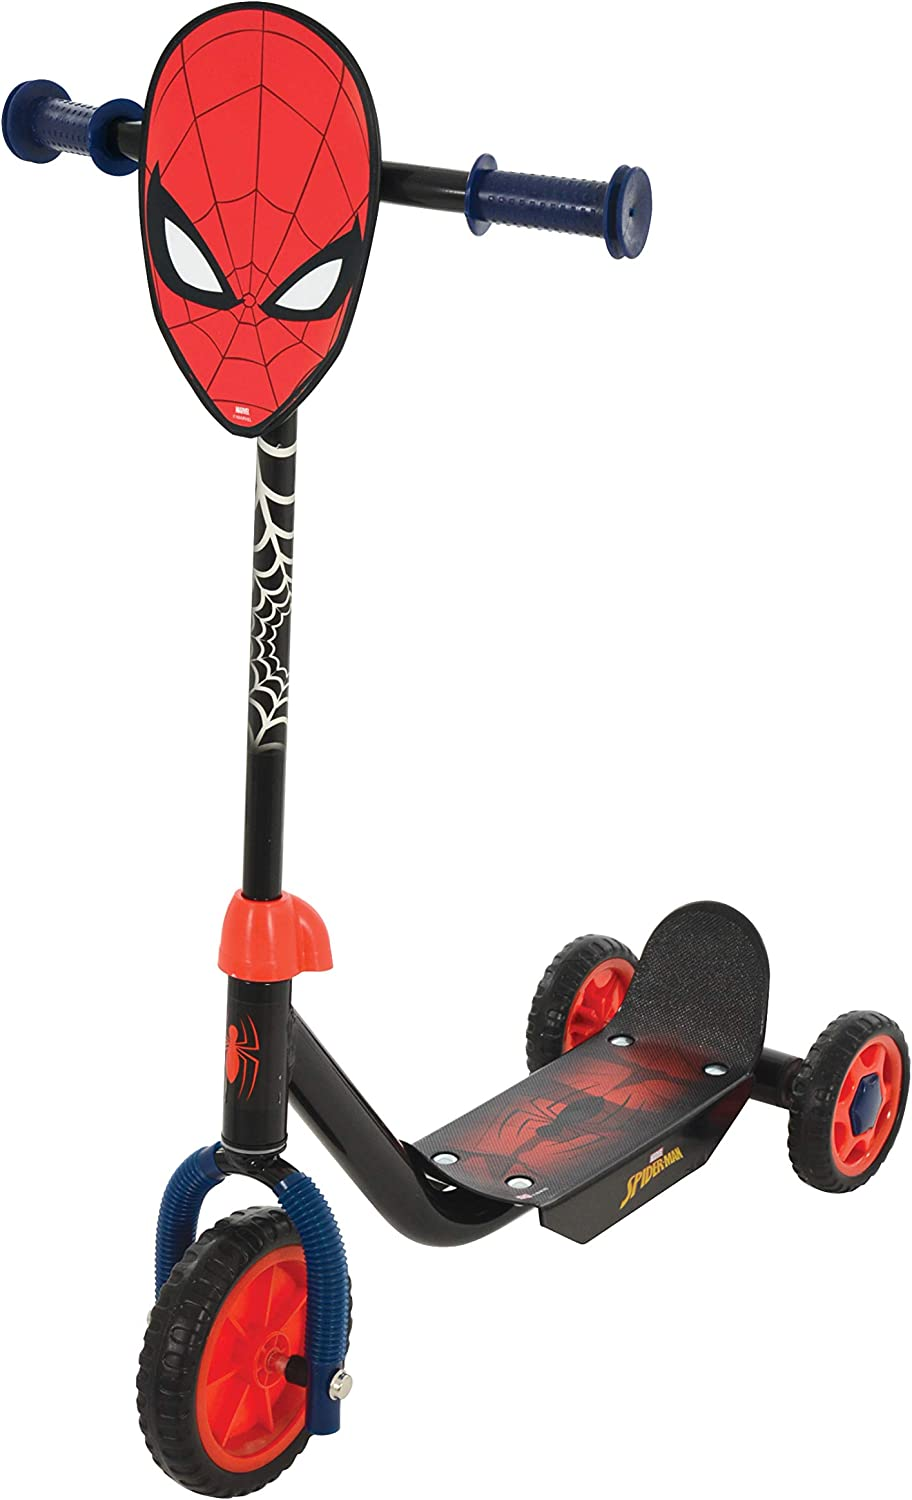 MV Sports Marvel Spiderman Deluxe Tri-Scooter Ages 3 Years